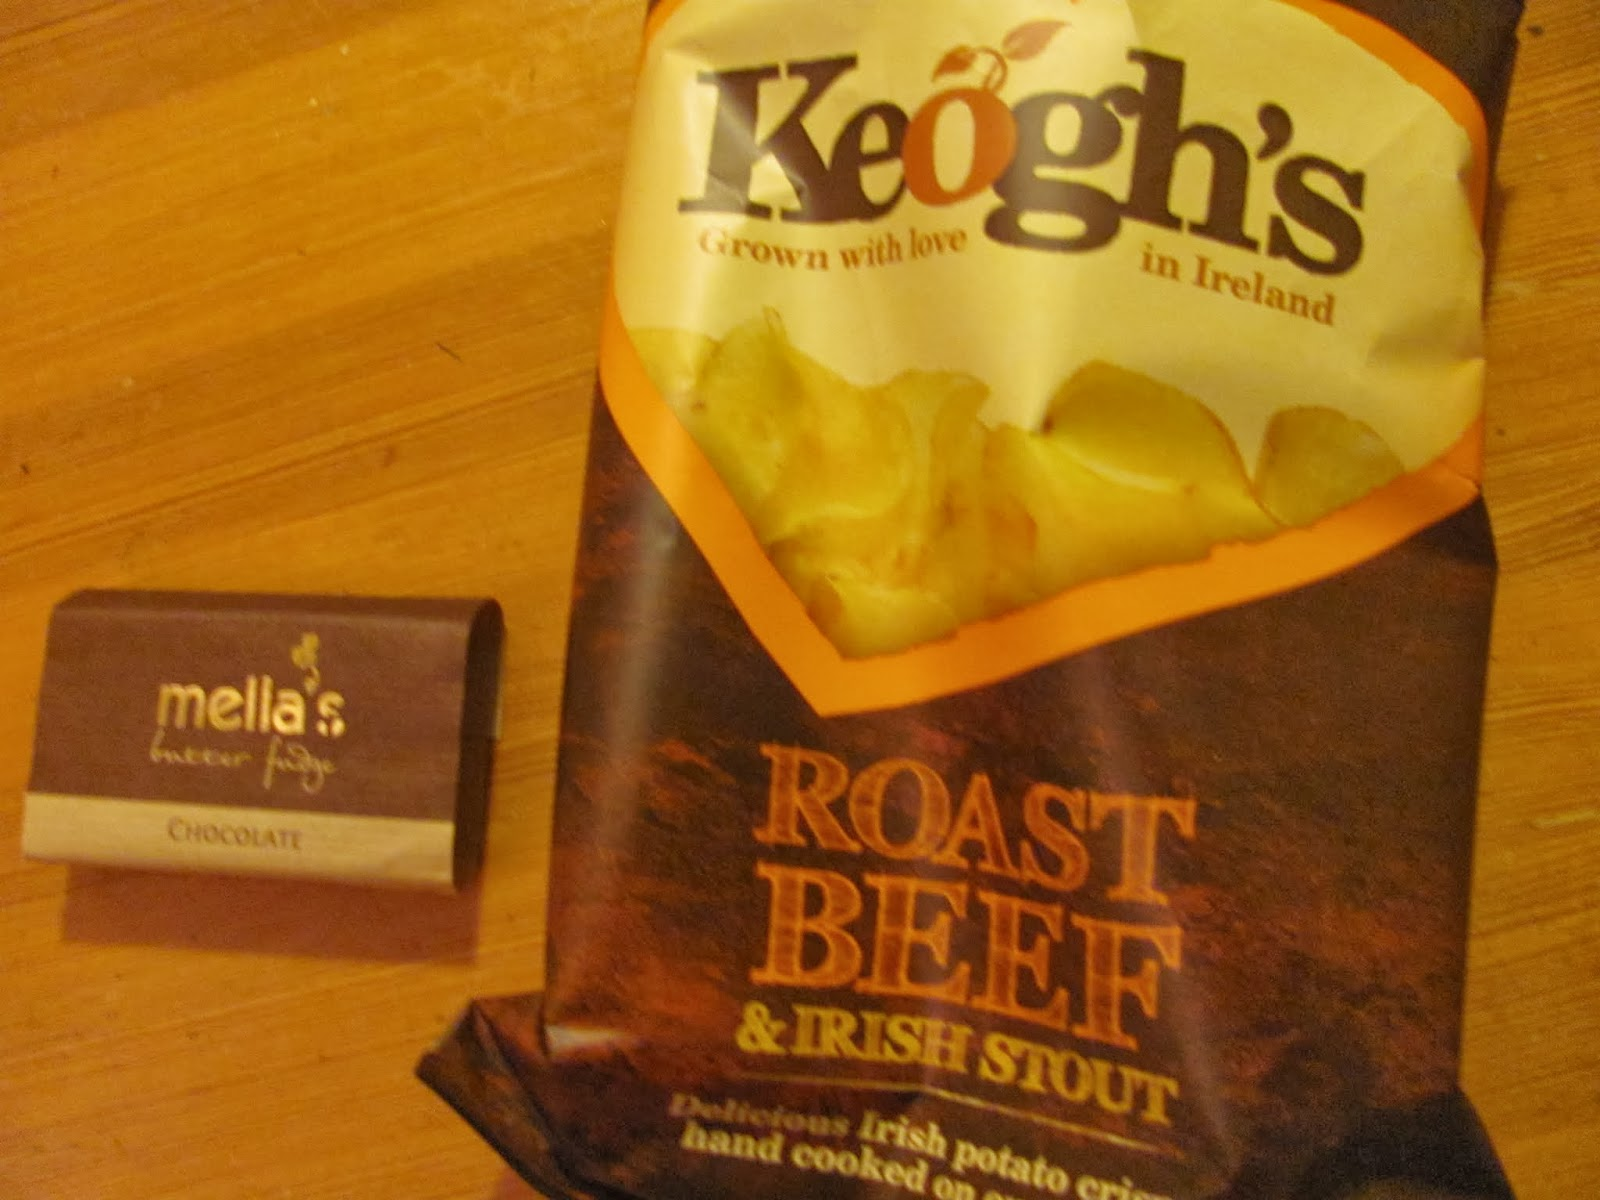 Keogh's crisps and Irish fudge